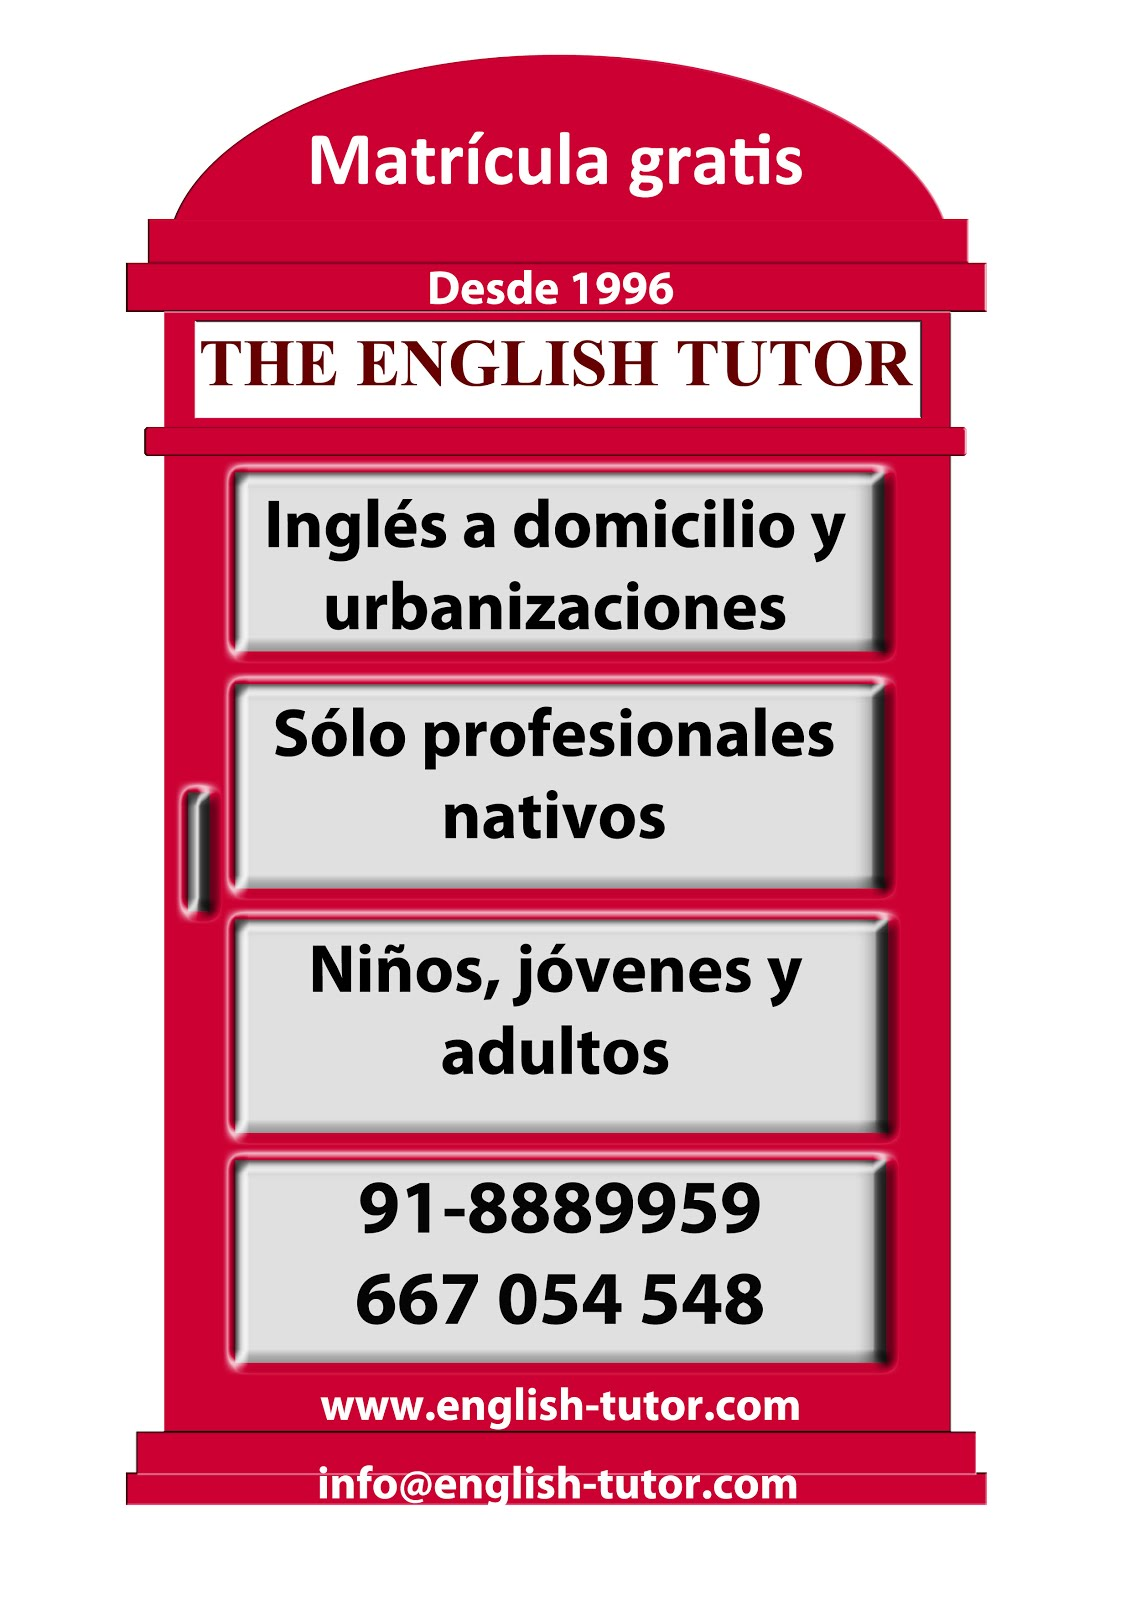 THE ENGLISH TUTOR